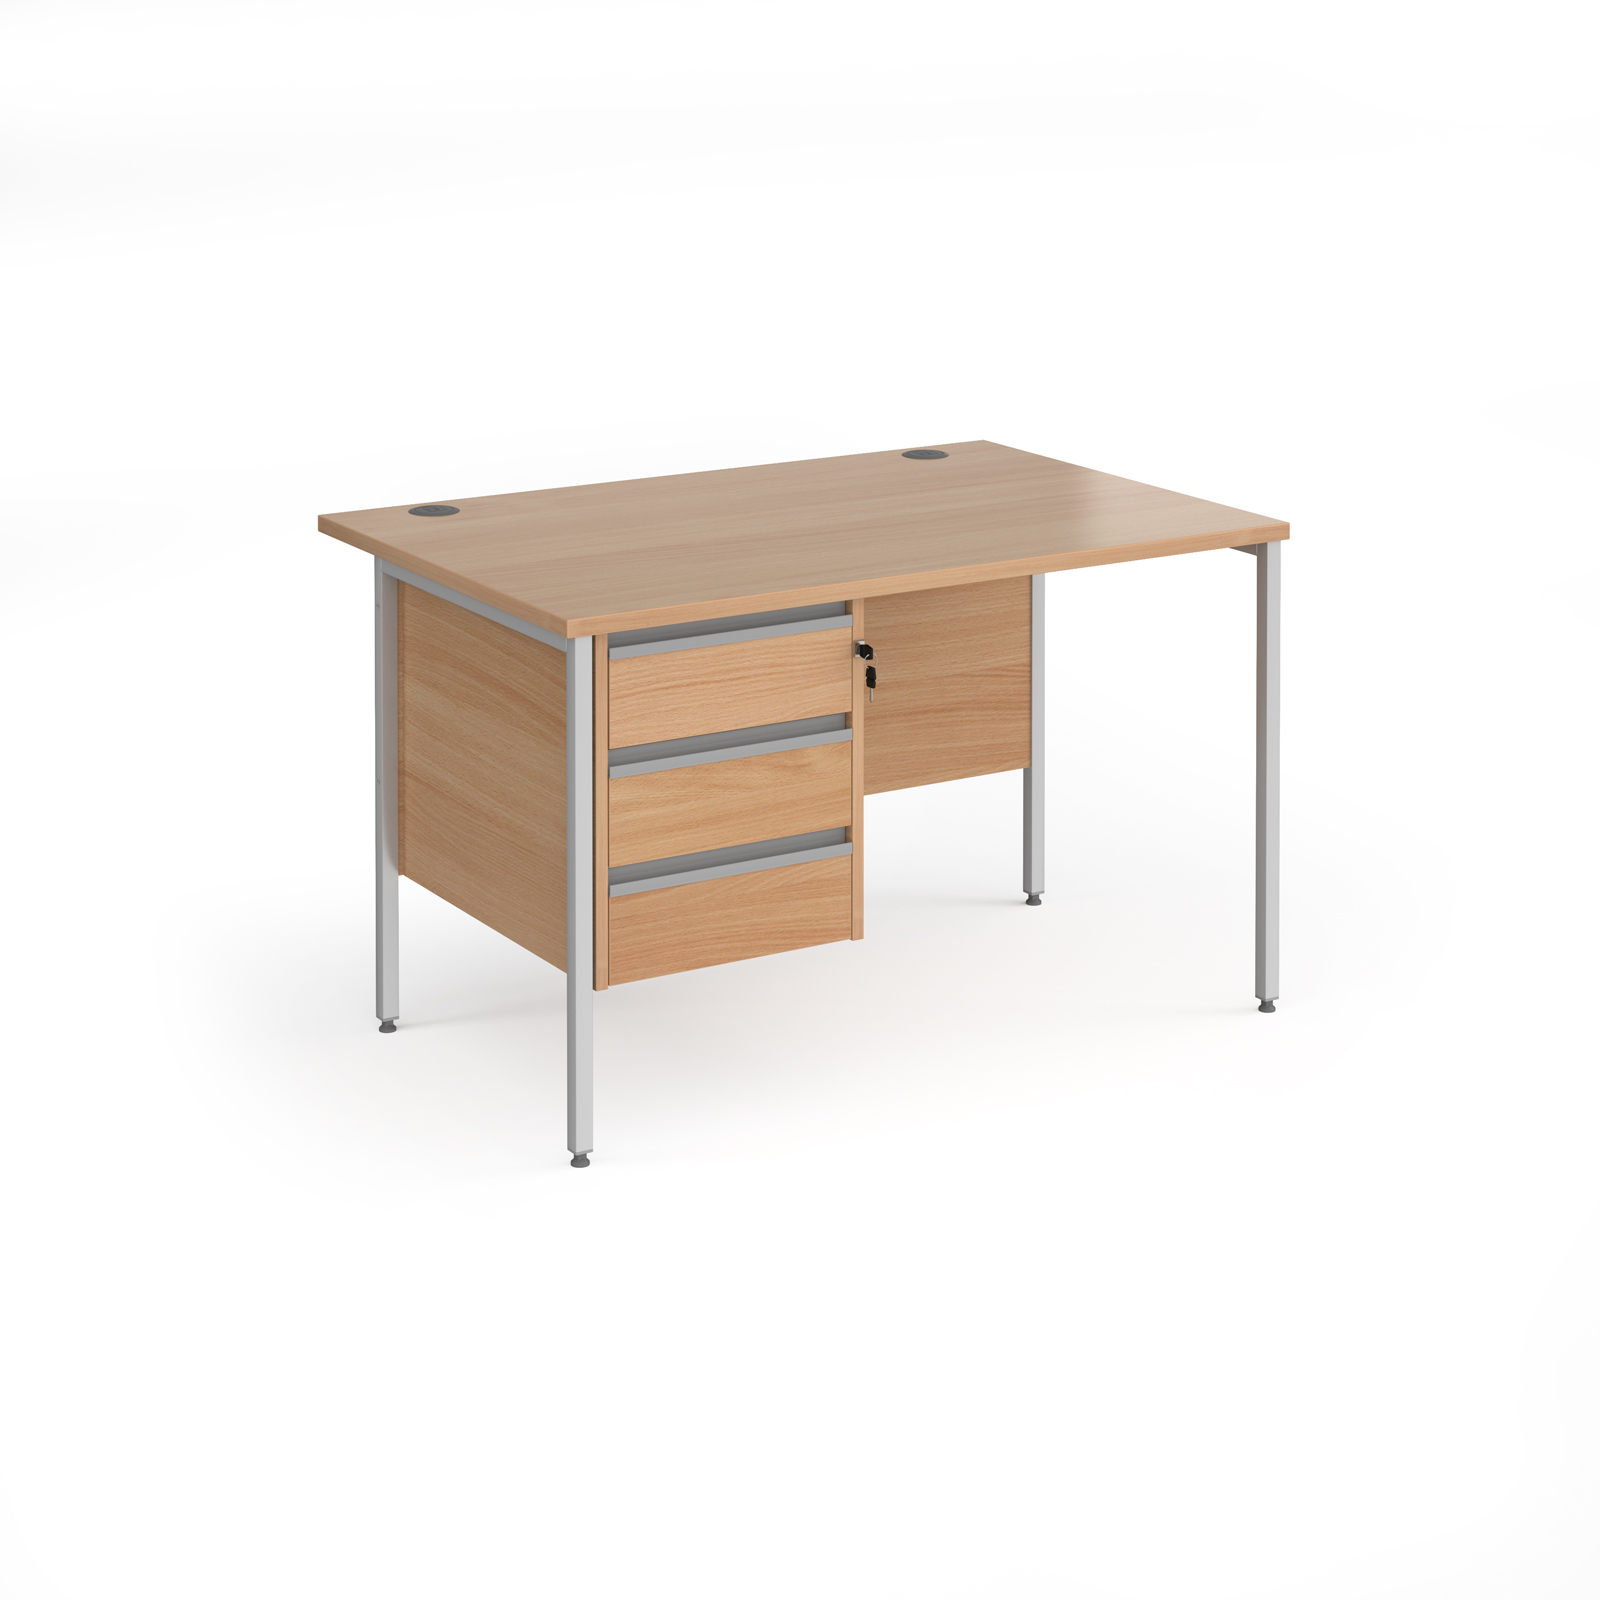 Rectangular Desks Contract 25 straight desk with 3 drawer pedestal and silver H-Frame leg 1200mm x 800mm - beech top